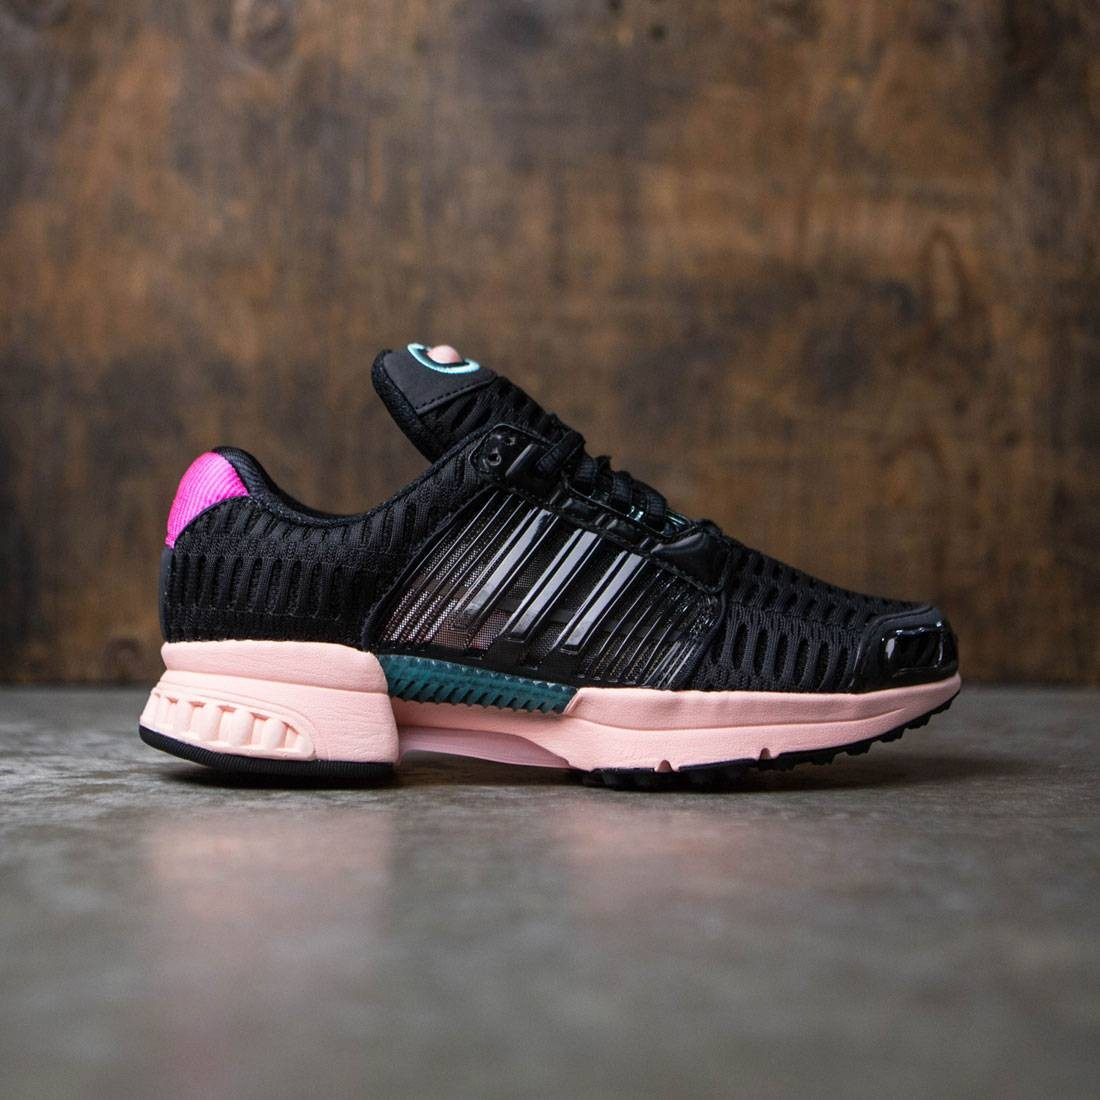 W Haze Climacool Black Women 1 Coral Core Adidas lK3FT1cJ